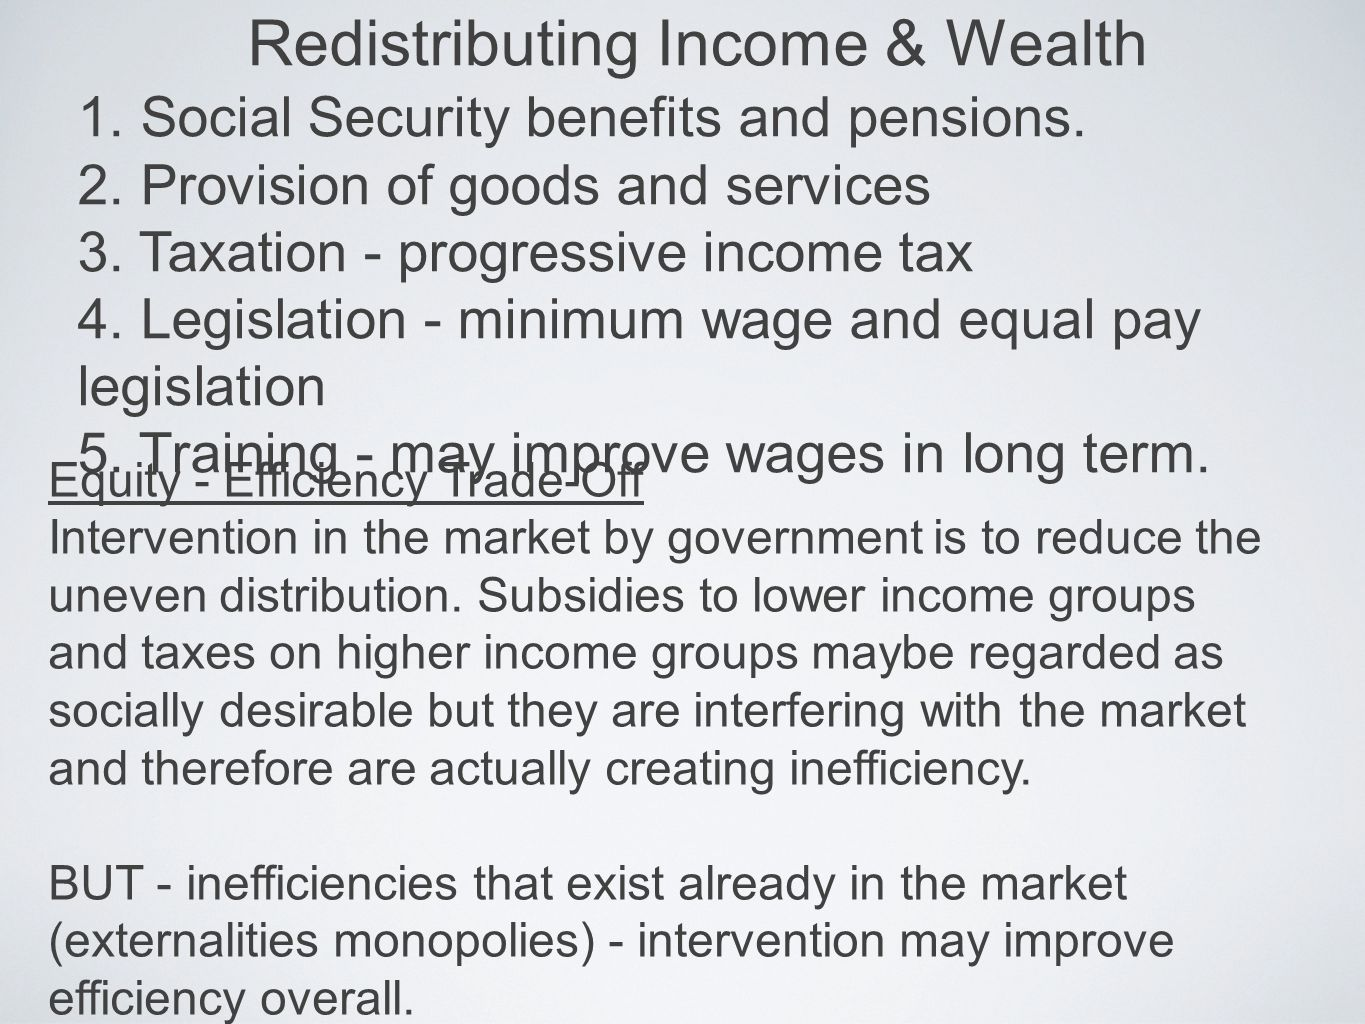 Redistributing Income & Wealth